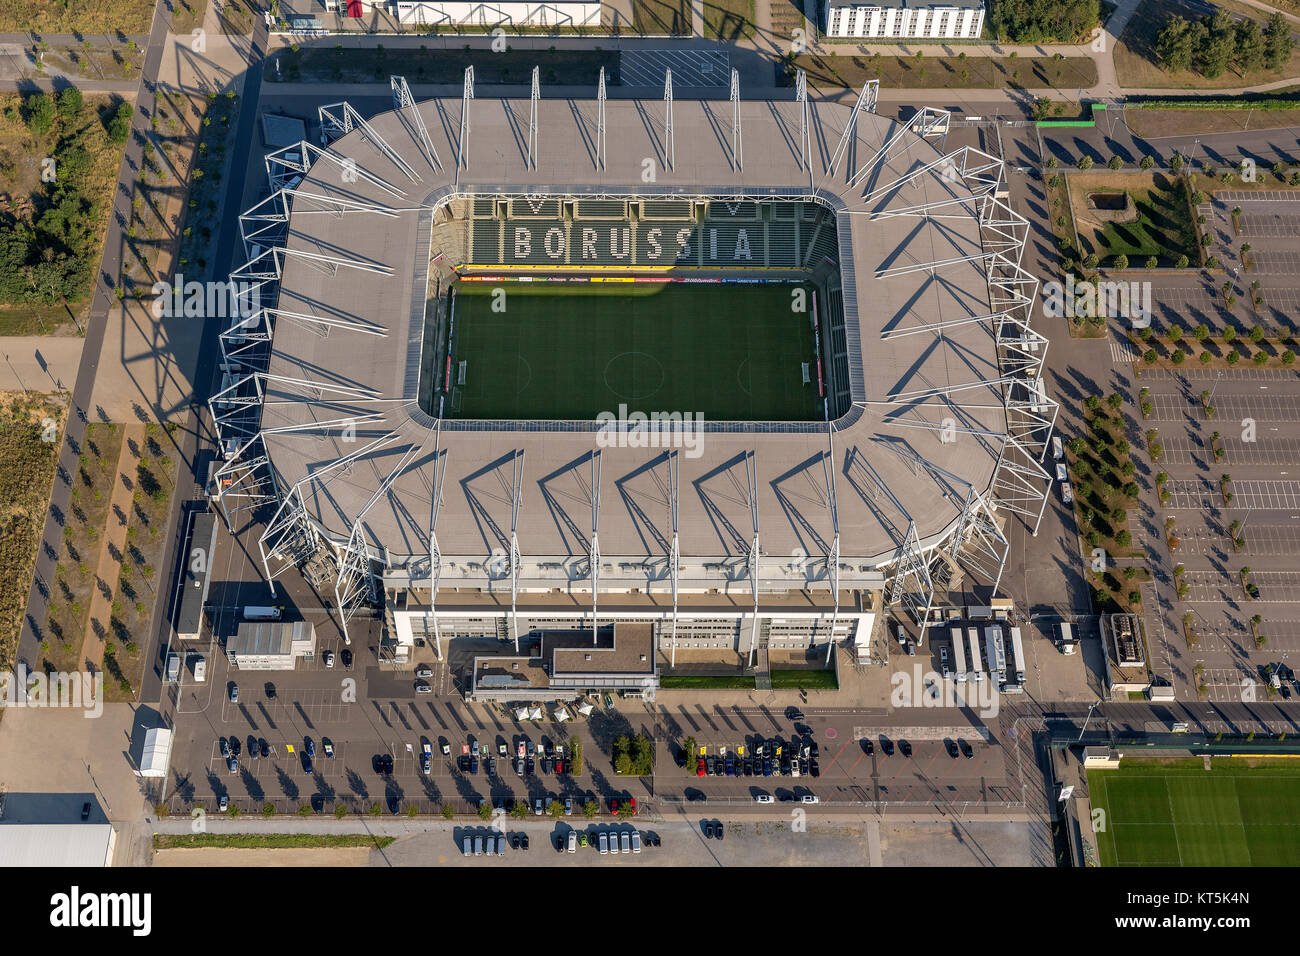 Borussia-Park, the stadium of Borussia Mönchengladbach, Bundesliga football, Moenchengladbach, Lower Rhine, North Stock Photo